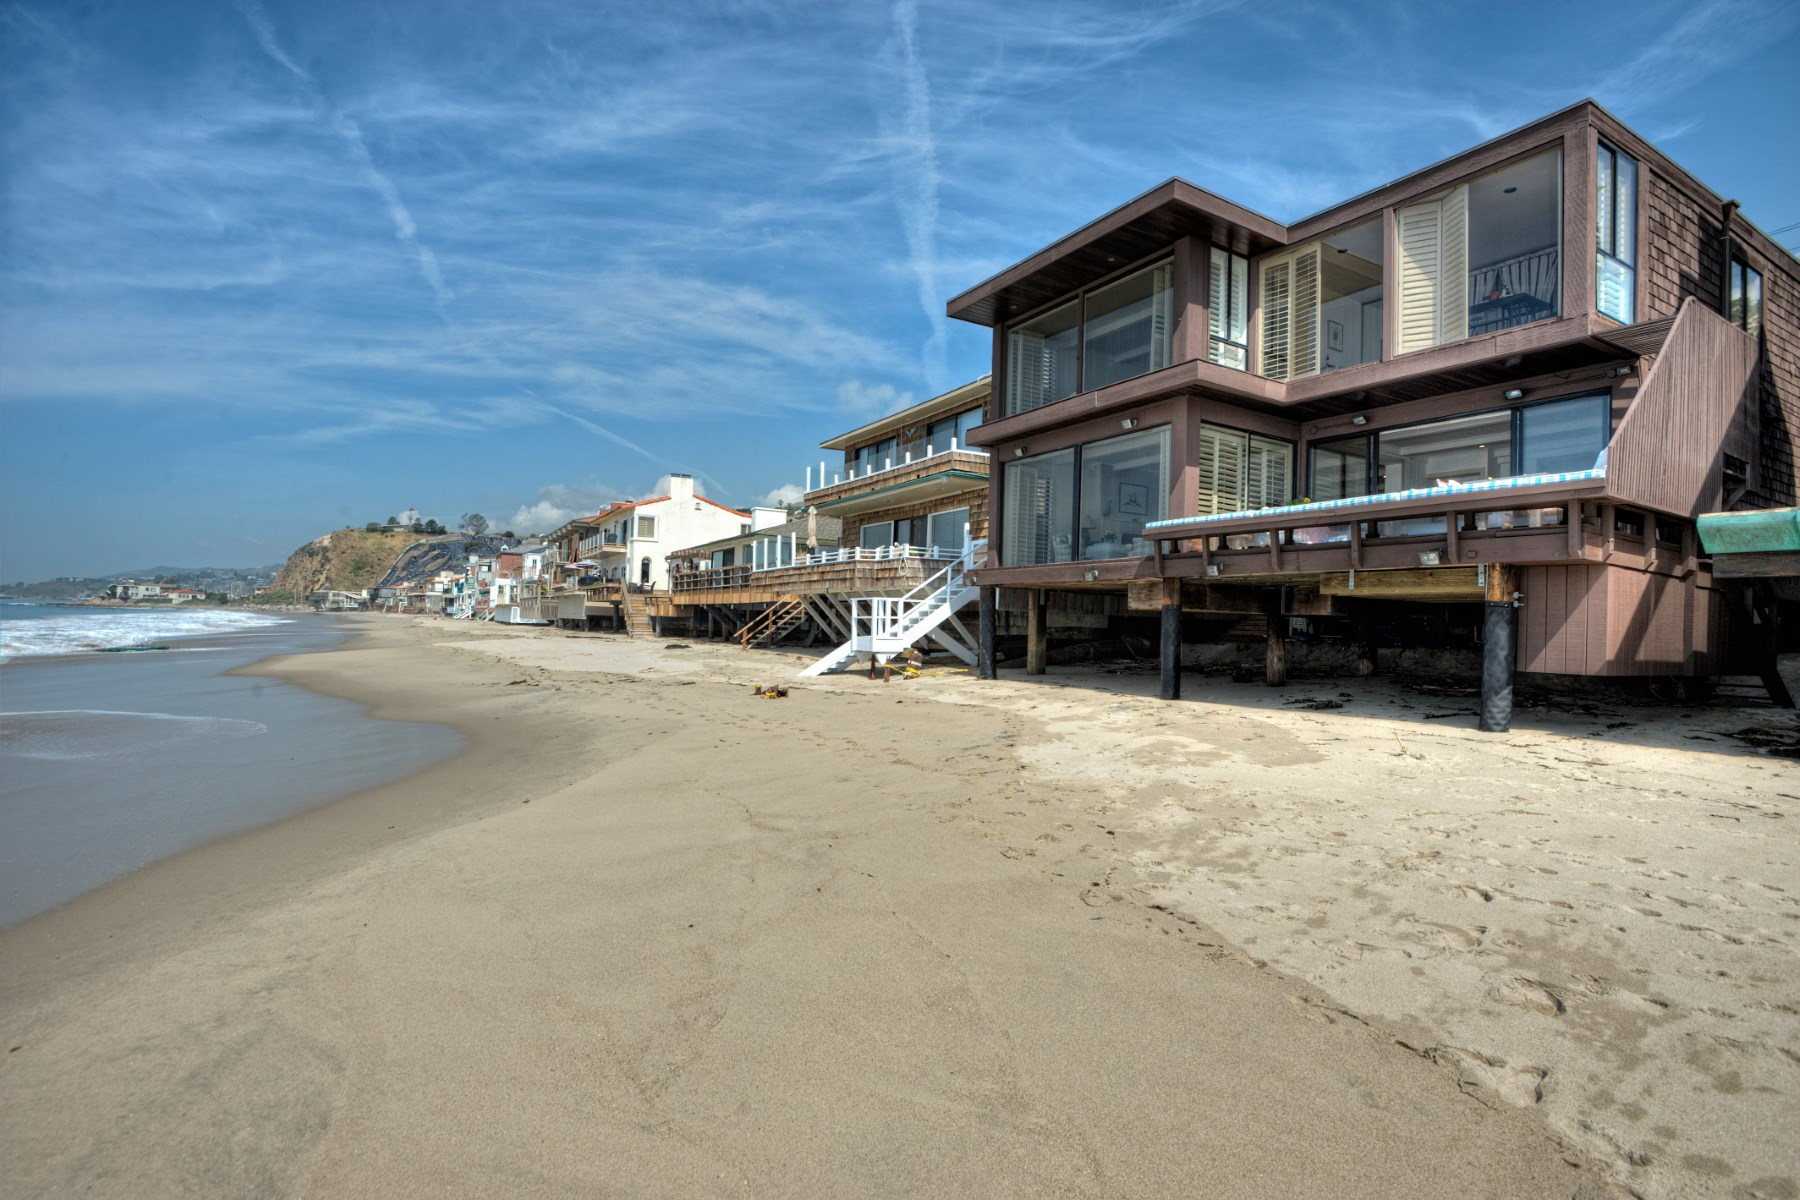 Single Family Home for Rent at Malibu Beach Home On The Sand 21468 Pacific Coast Hwy Malibu, California 90265 United States